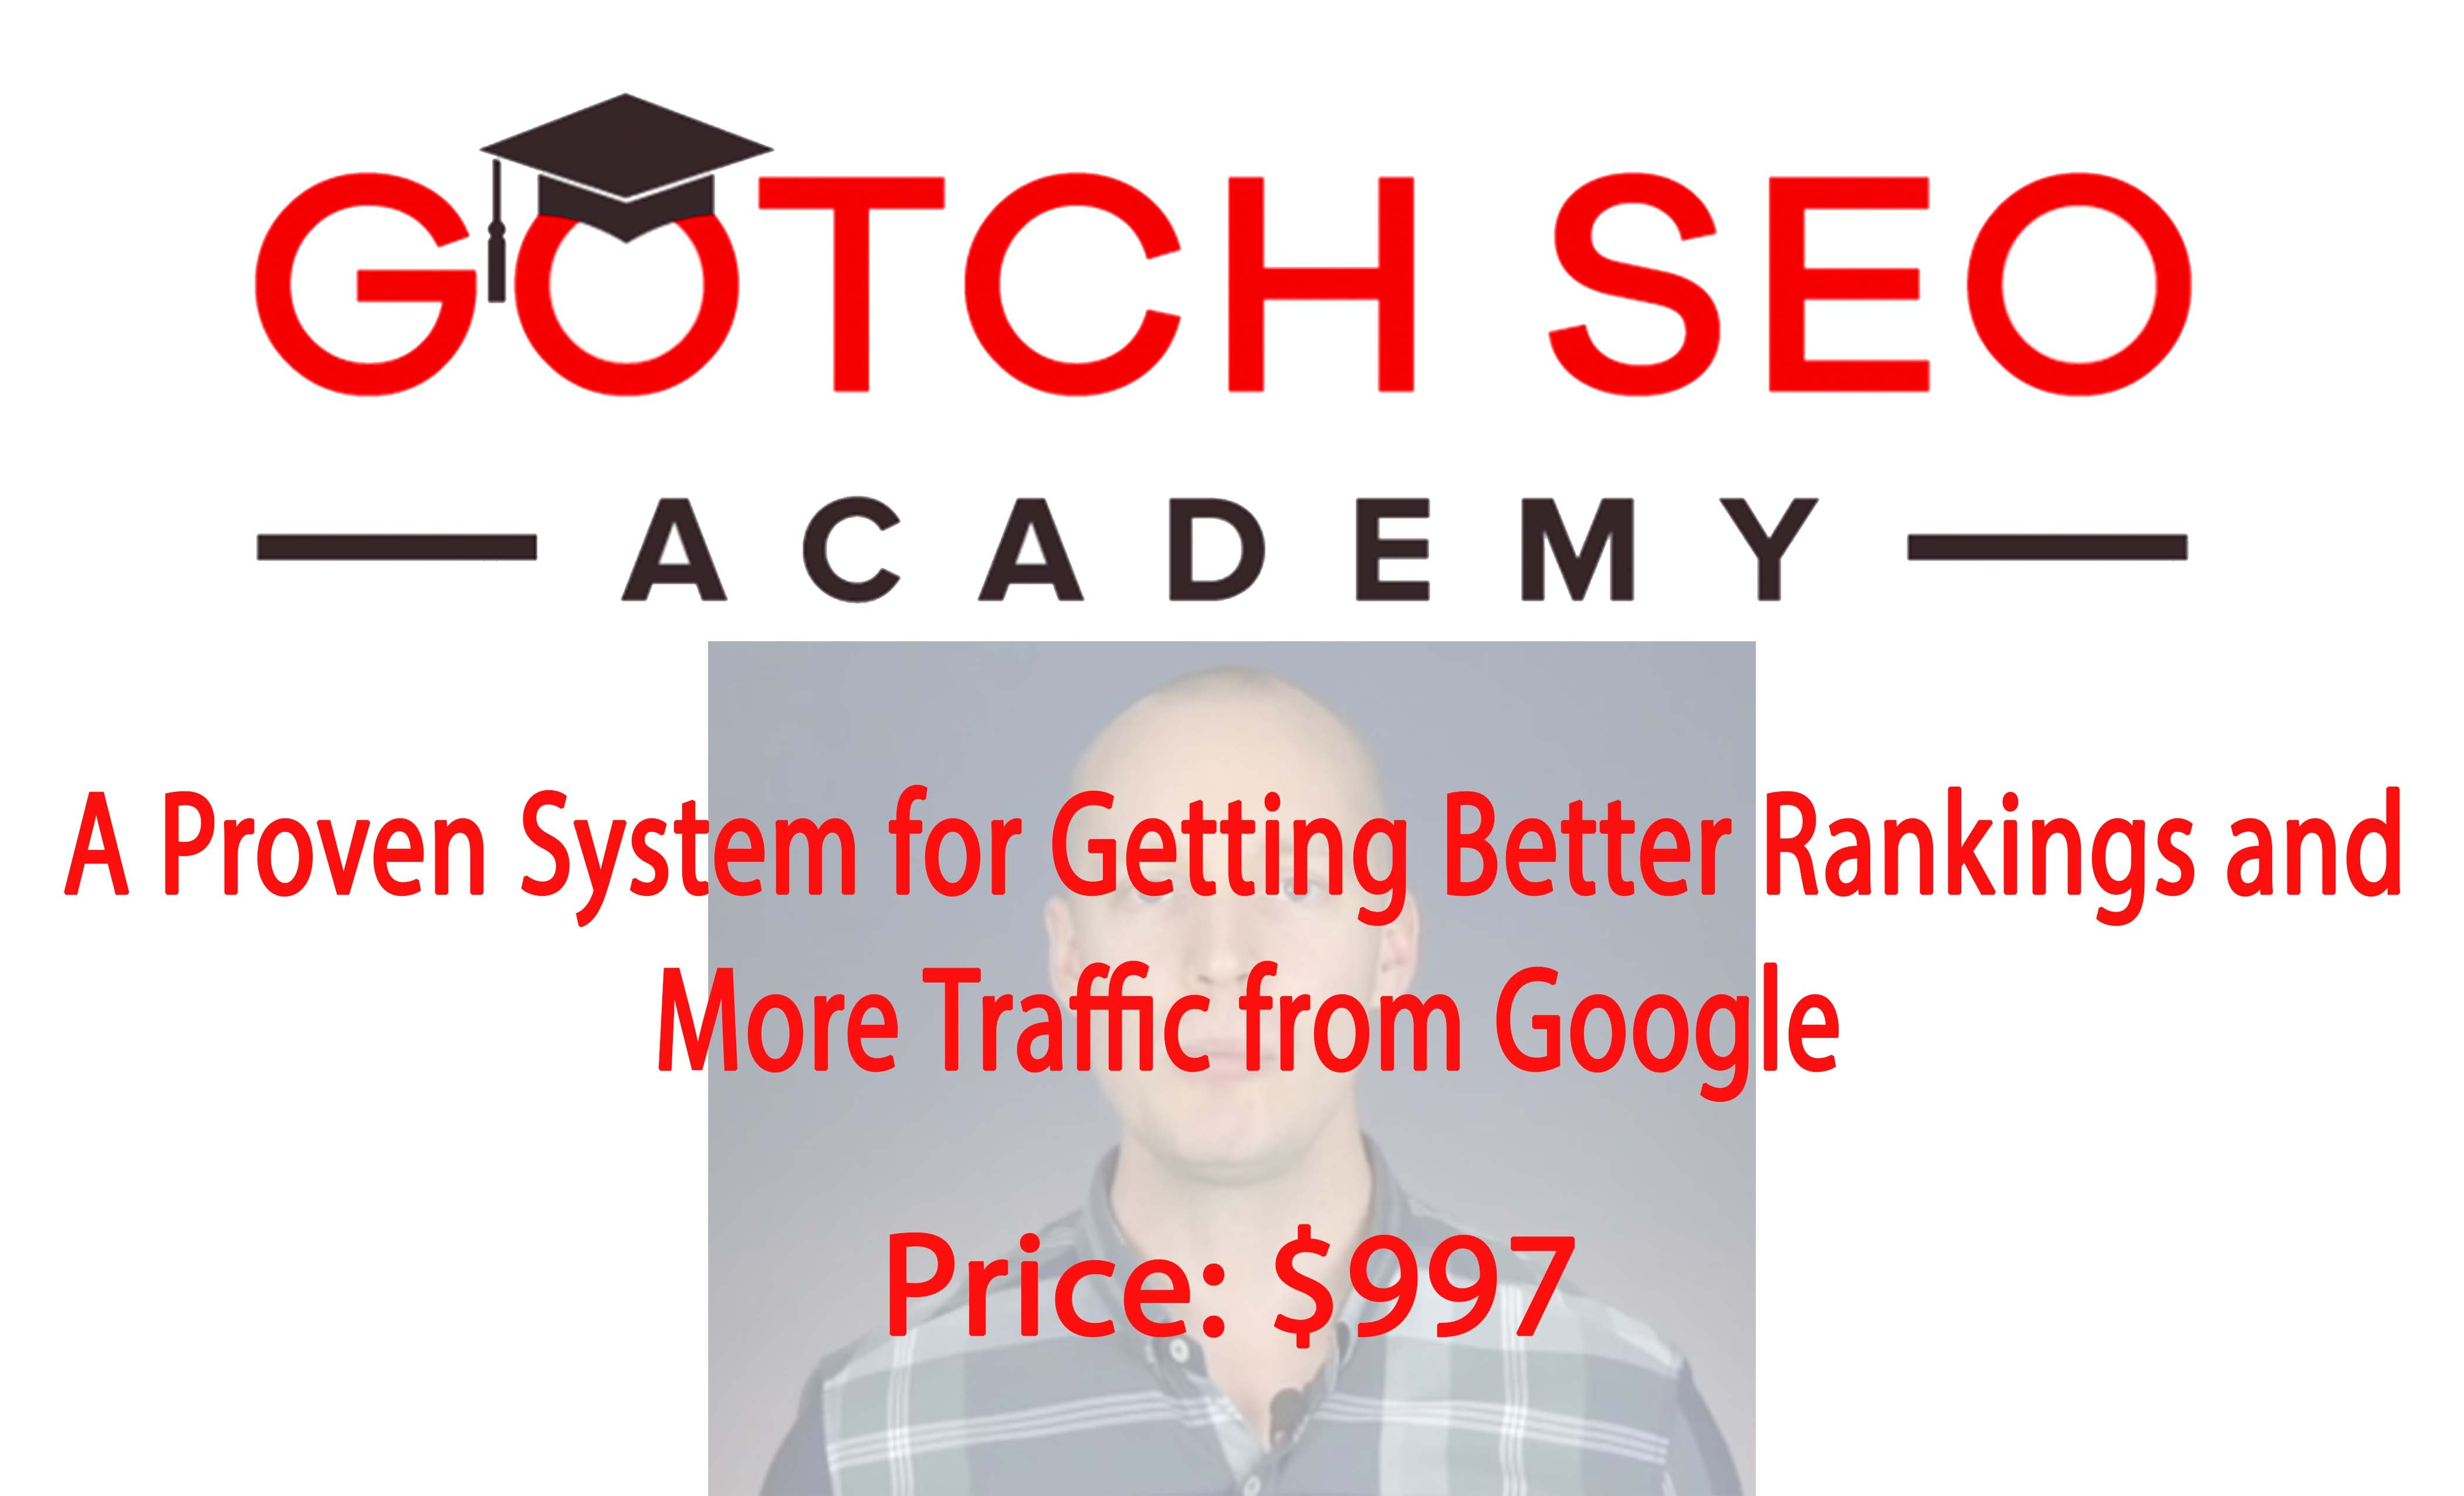 Photo of Download Gotch SEO Academy 2.0 Complete Course by Nathan Gotch